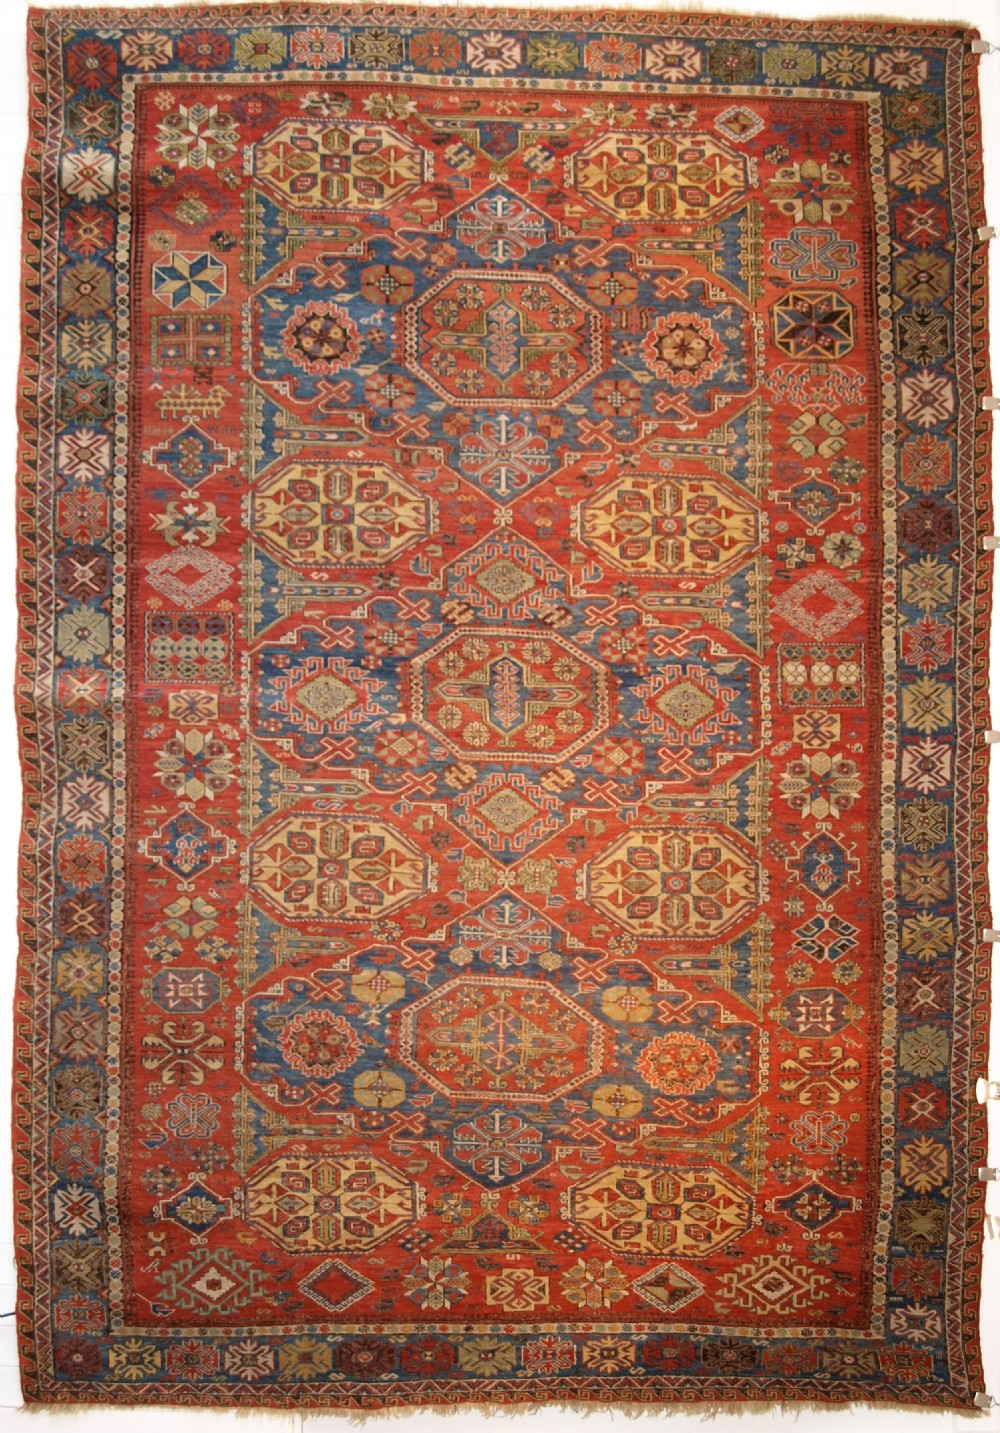 antique caucasian three medallion soumak carpet of rare design superb colour circa 1880